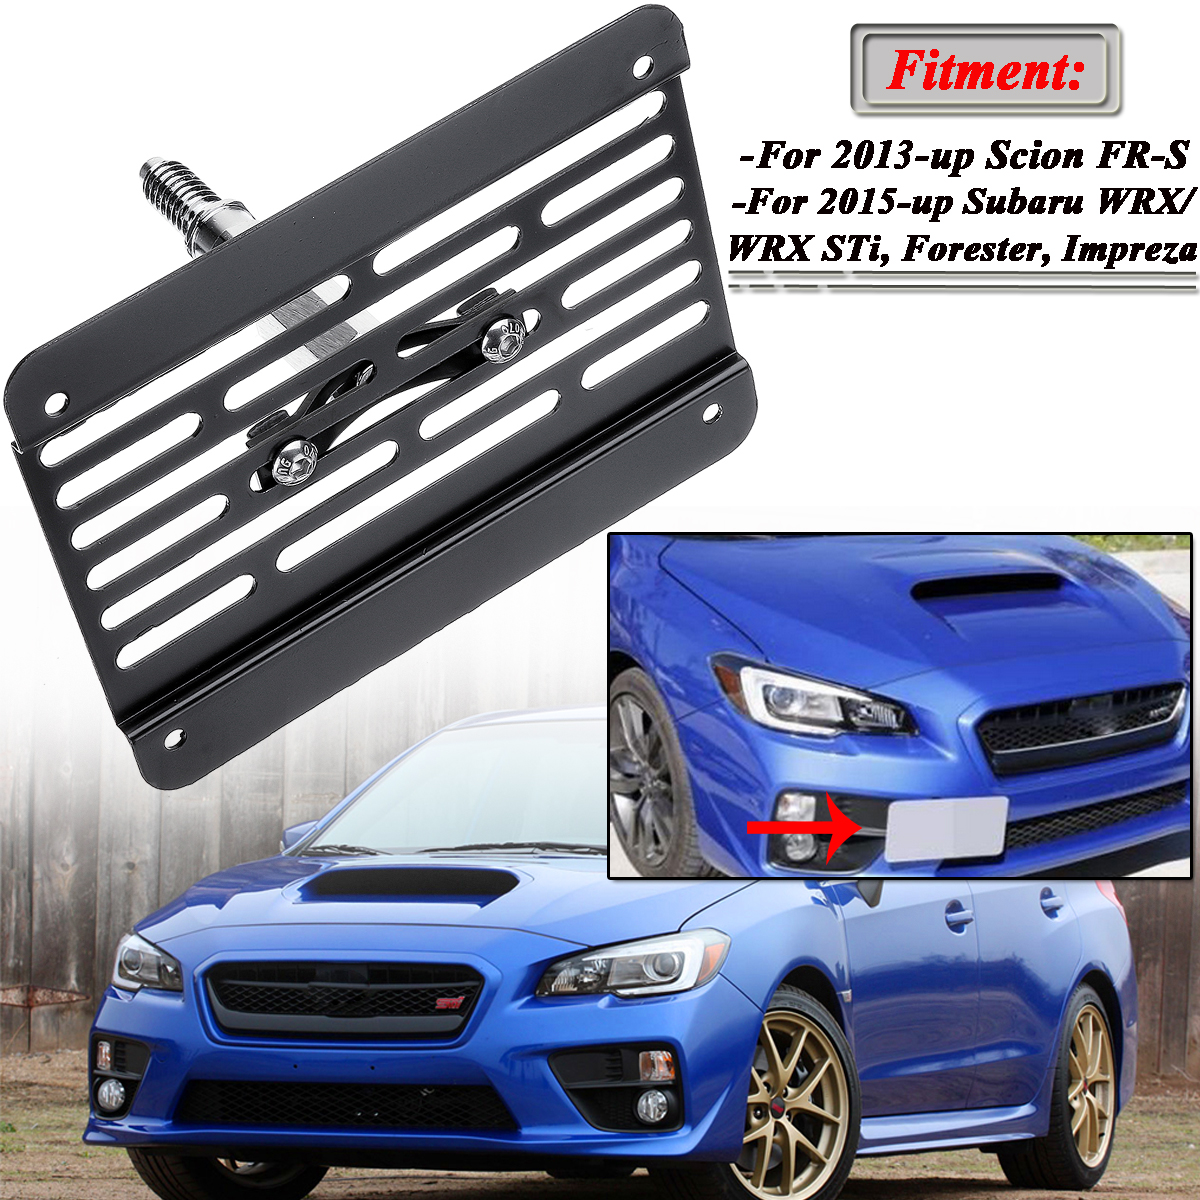 Blue Side Mount Bumper License Plate Mounting Bracket Plate for Subaru Mazda